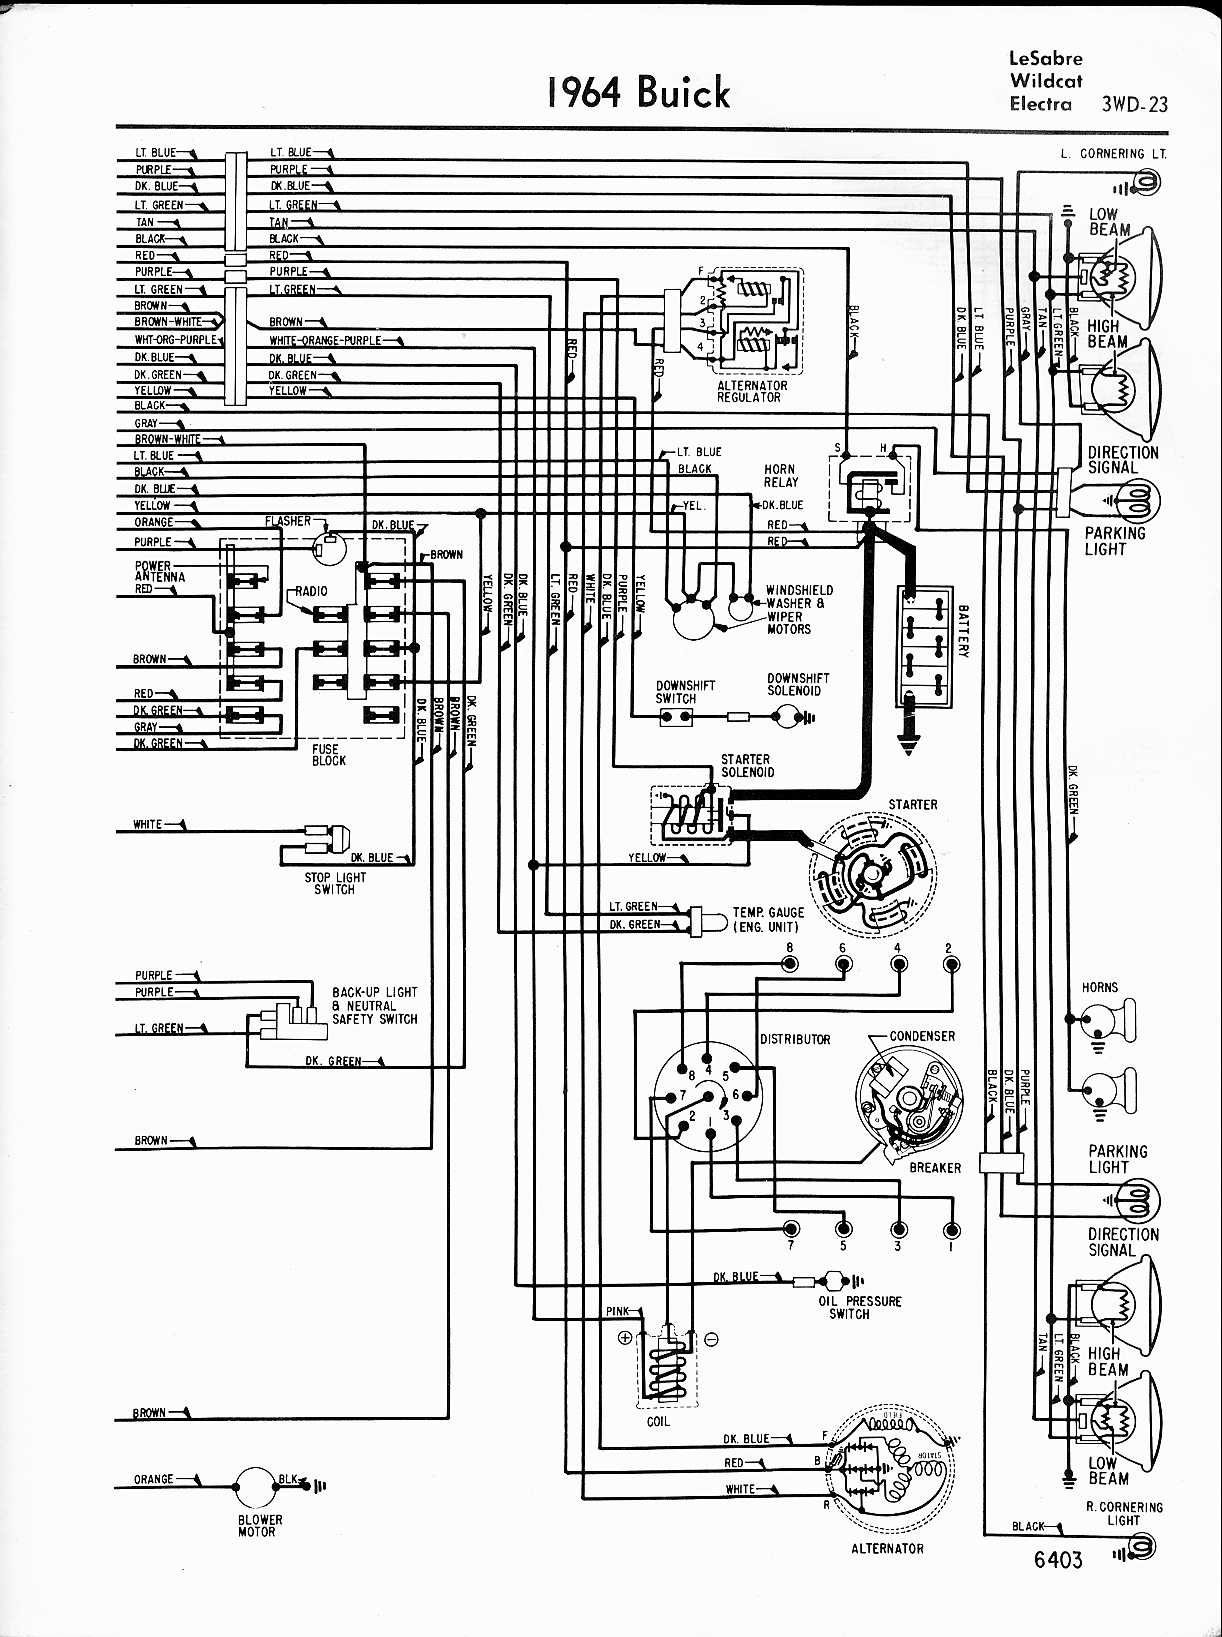 MWireBuic65_3WD 023 2001 buick regal wiring diagram 2001 mazda tribute wiring diagram buick regal 2002 radio wiring diagram at creativeand.co